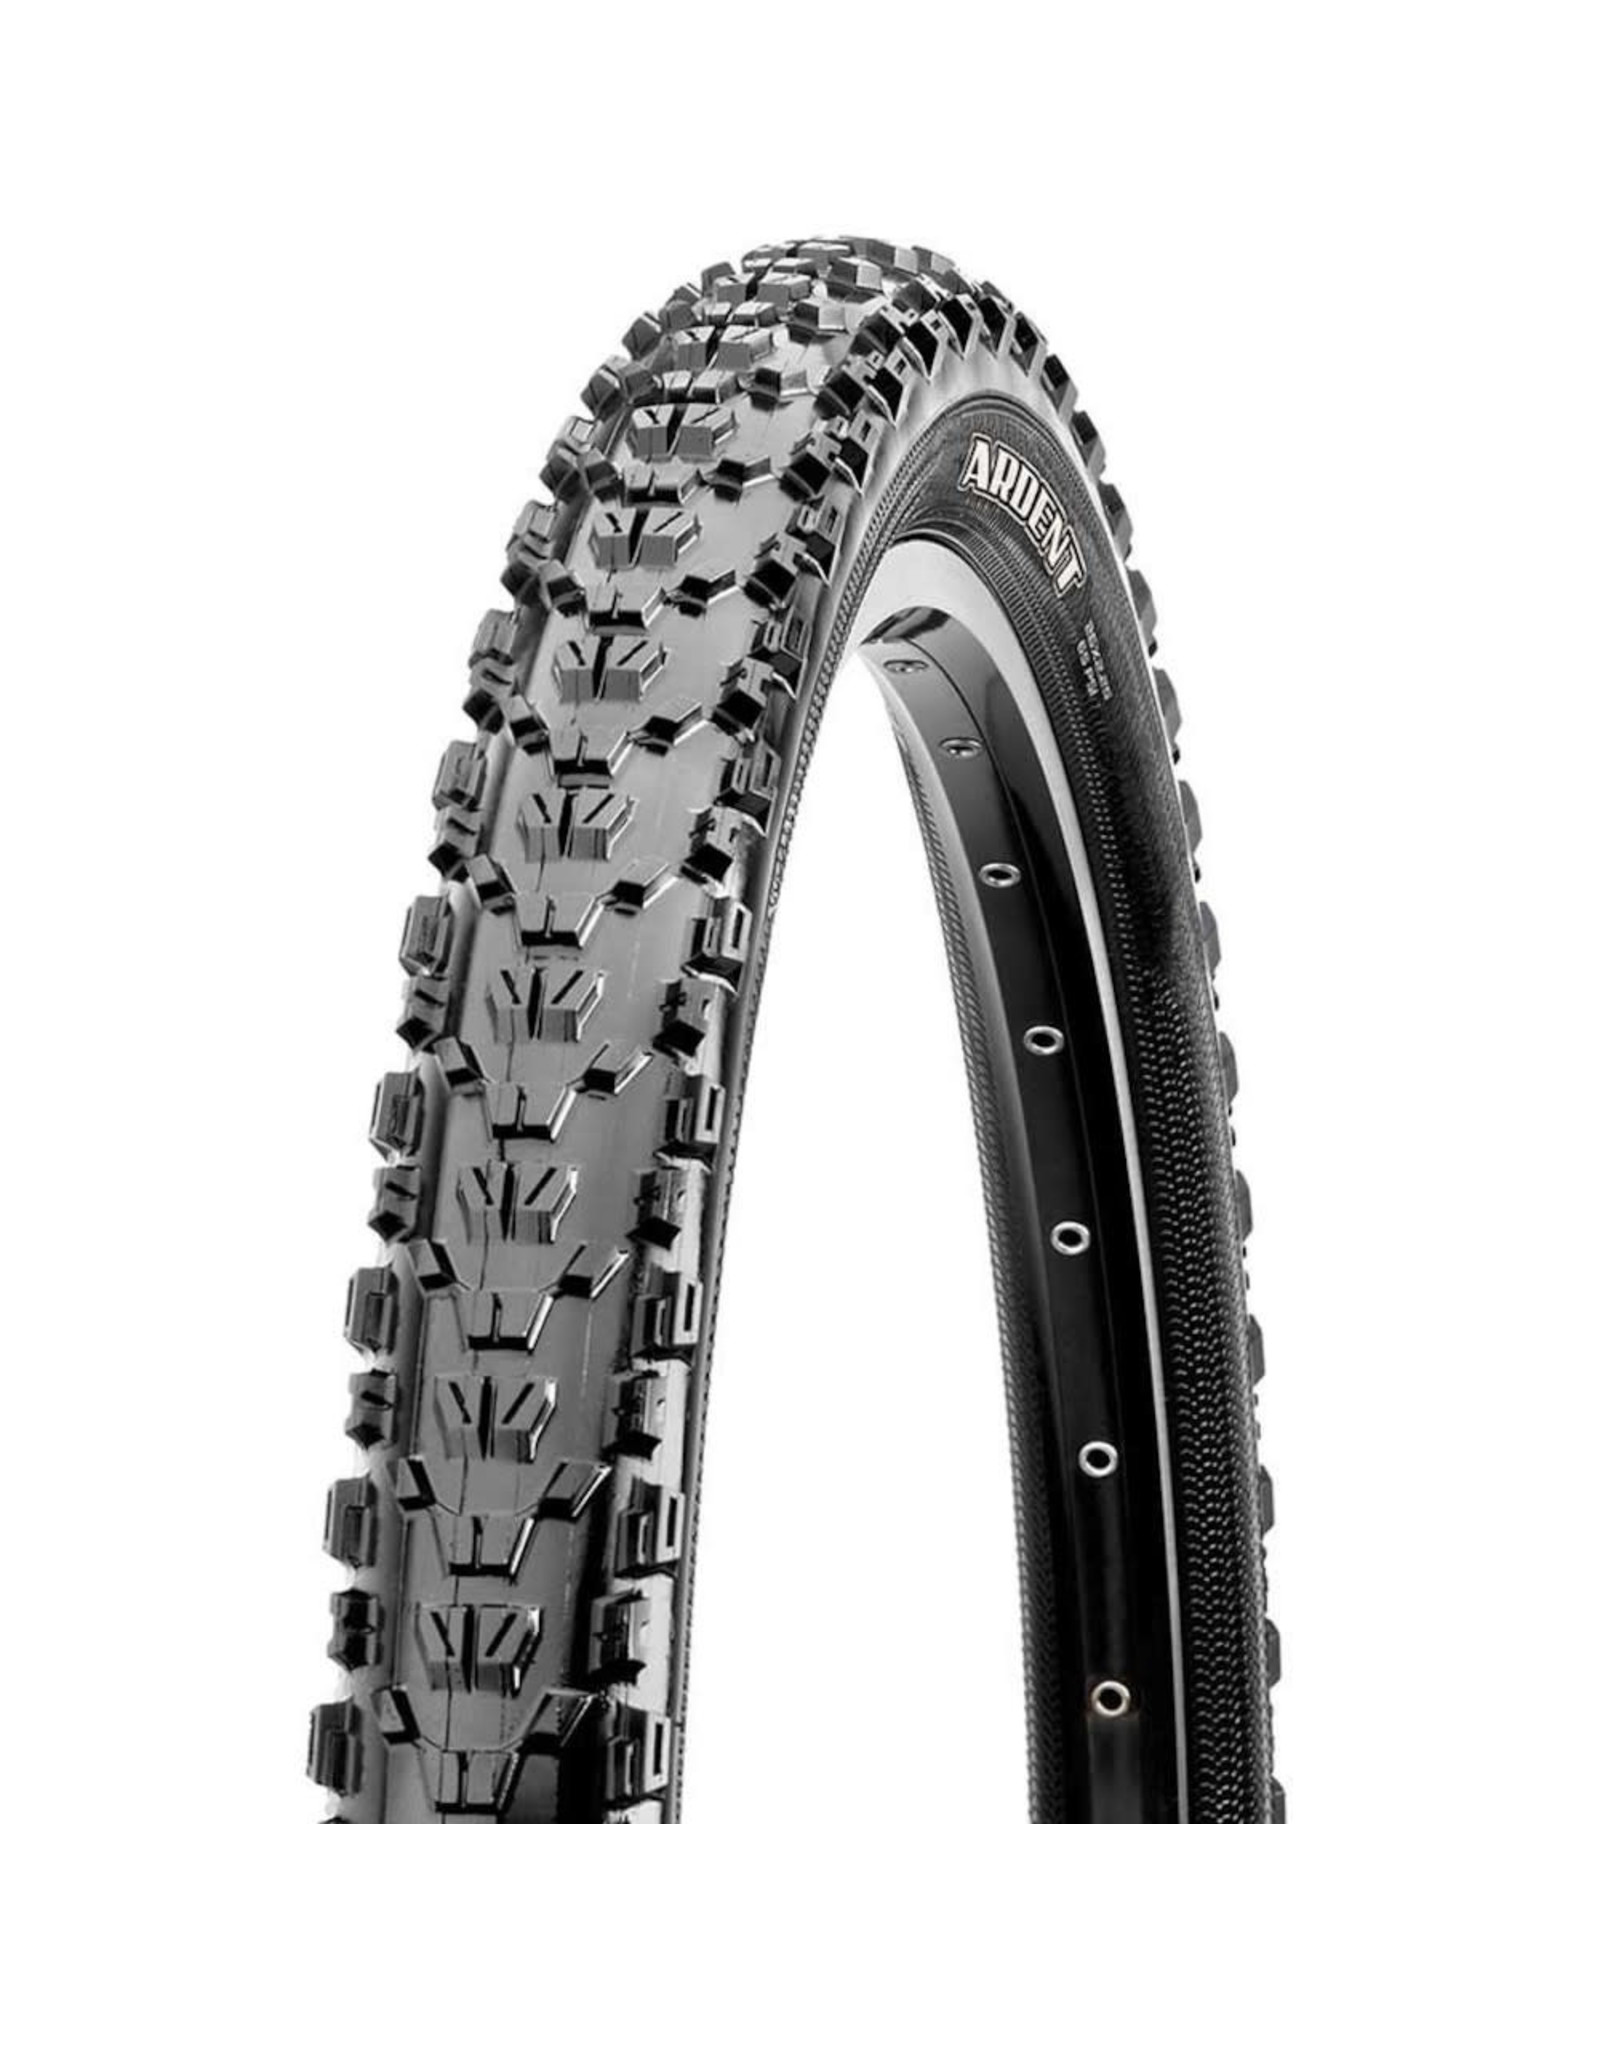 Maxxis Maxxis Ardent, EXO, TR